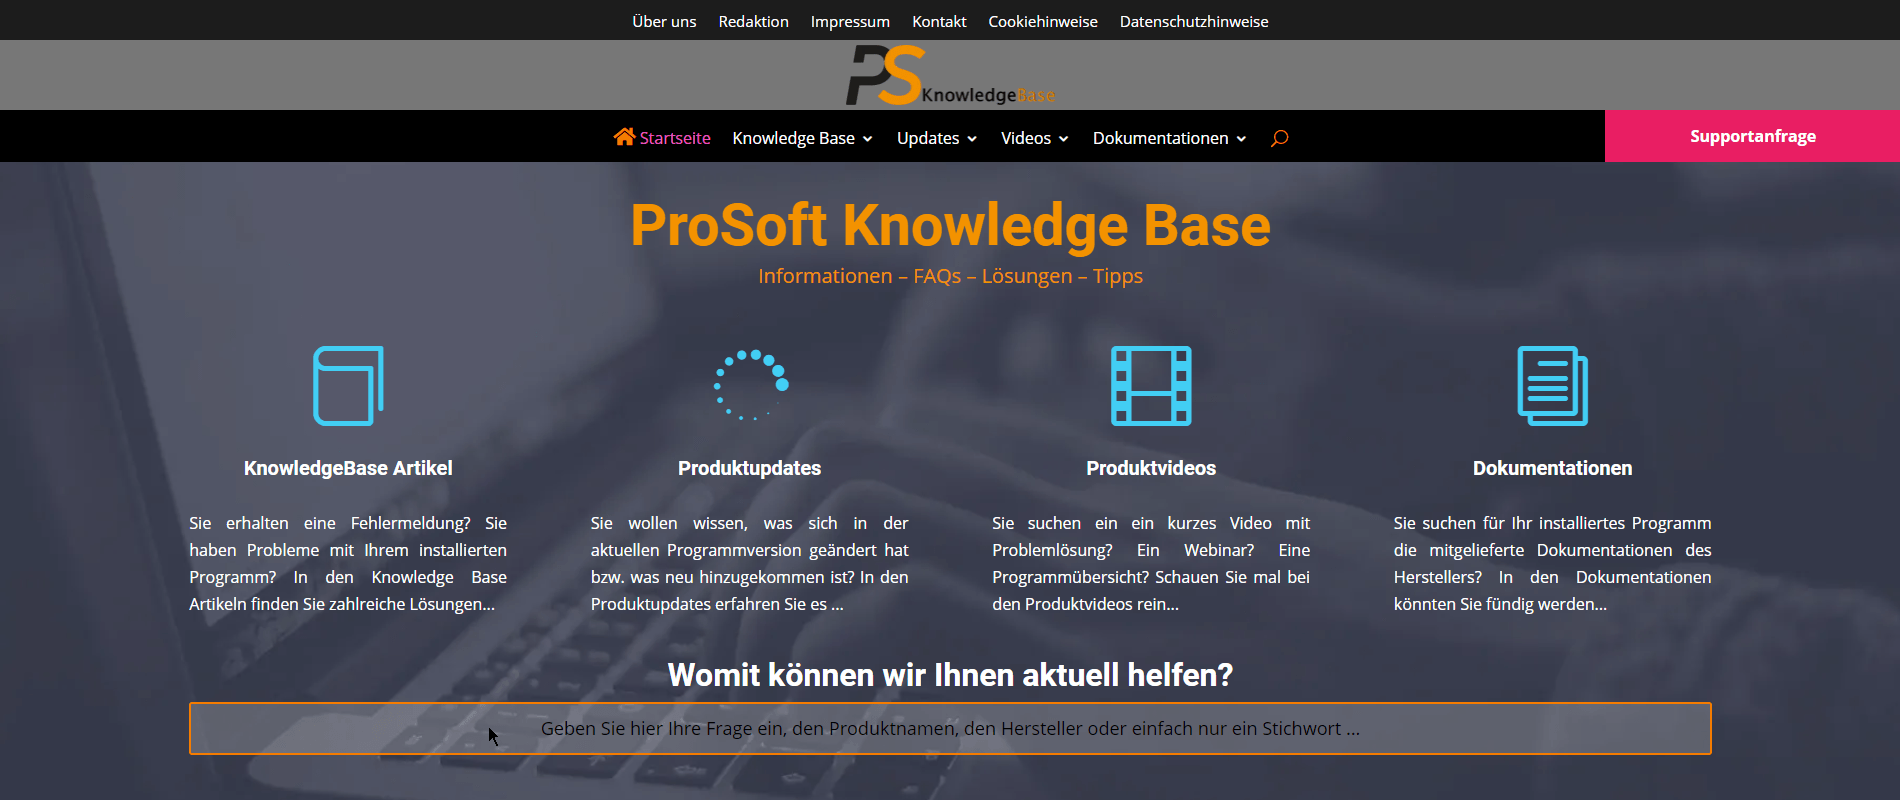 ProSoft Knowledge Base v3 - Startseite